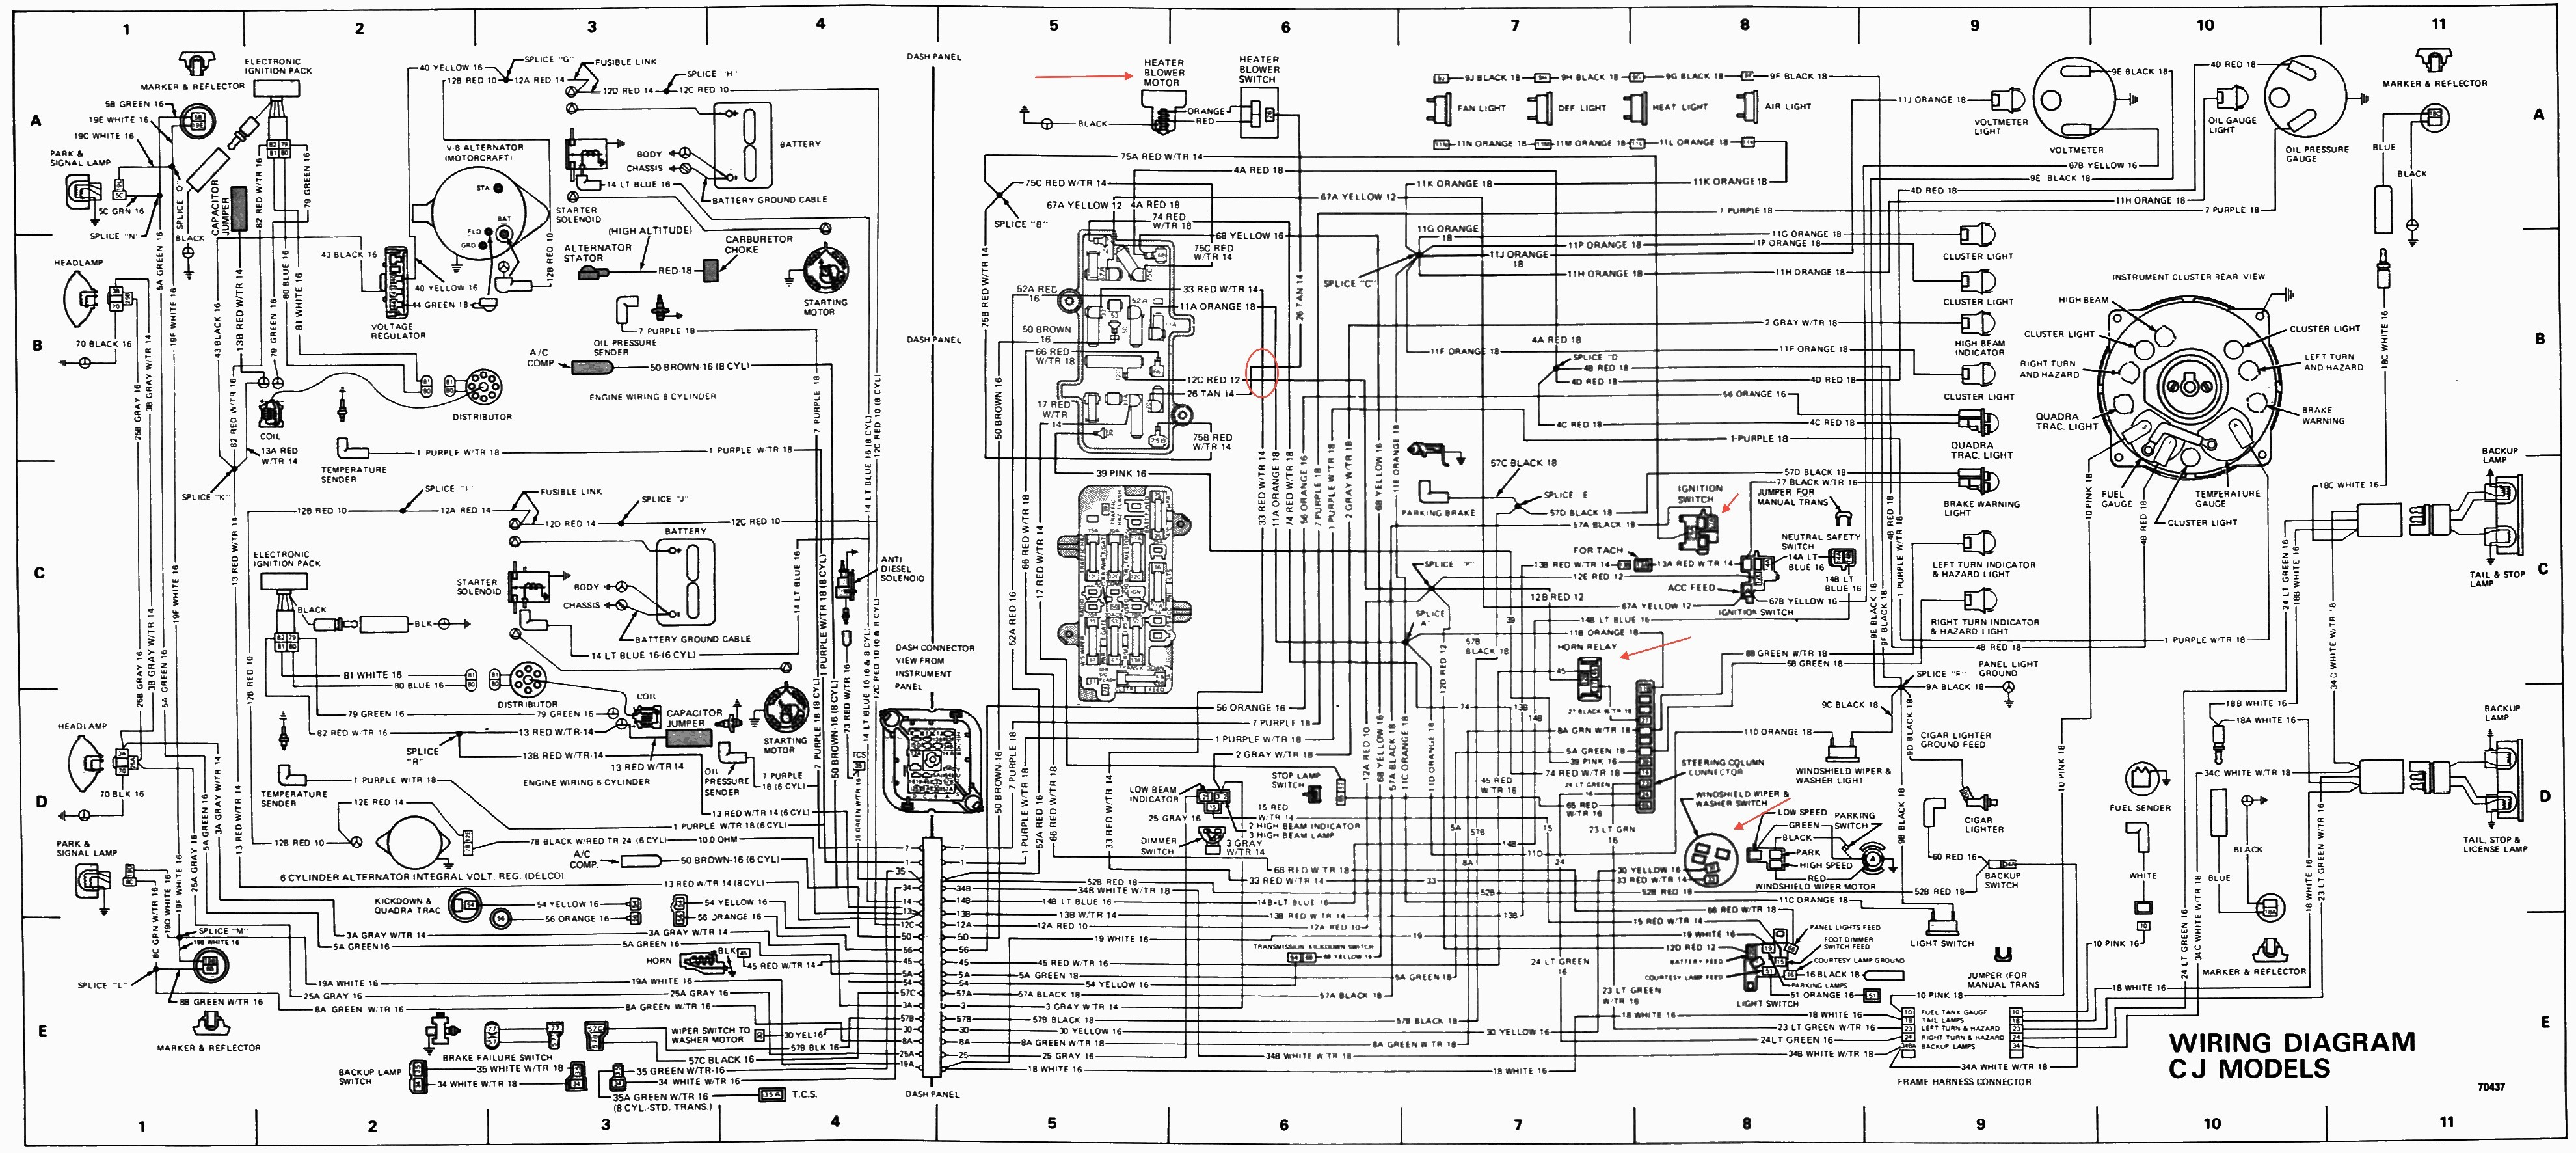 Pictures Jeep Cj7 Ignition Wiring - F150 2002 5 4l Engine Diagram for Wiring  Diagram Schematics | 1980 Jeep Cj7 Ignition Wiring Diagram |  | Wiring Diagram Schematics